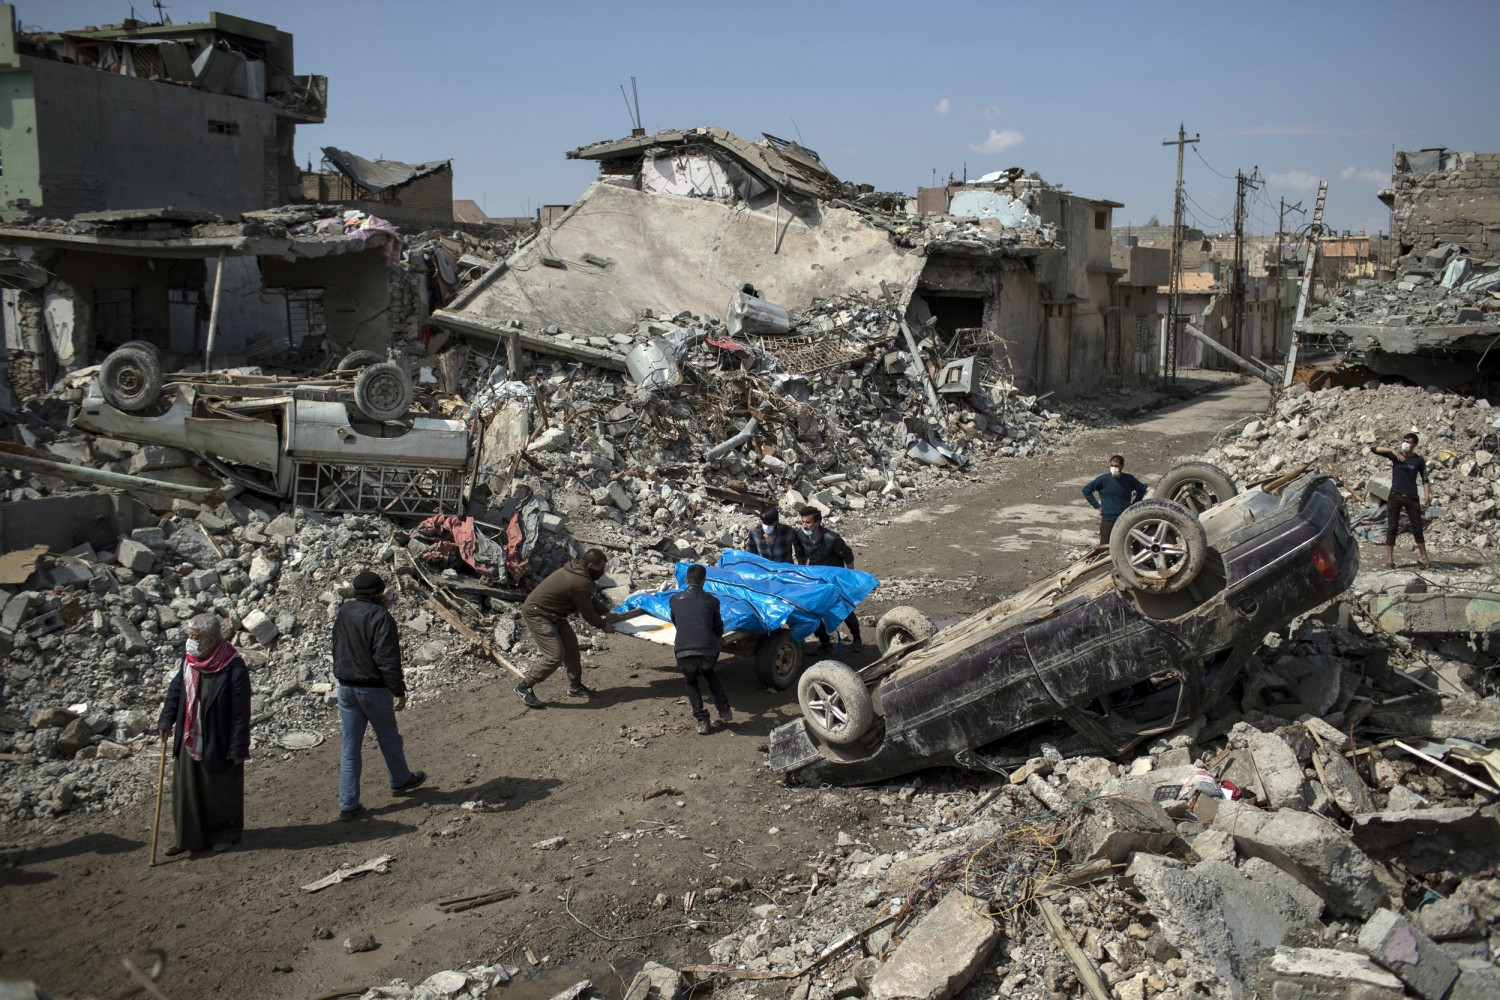 100 civilians killed after USA bomb attack in Mosul